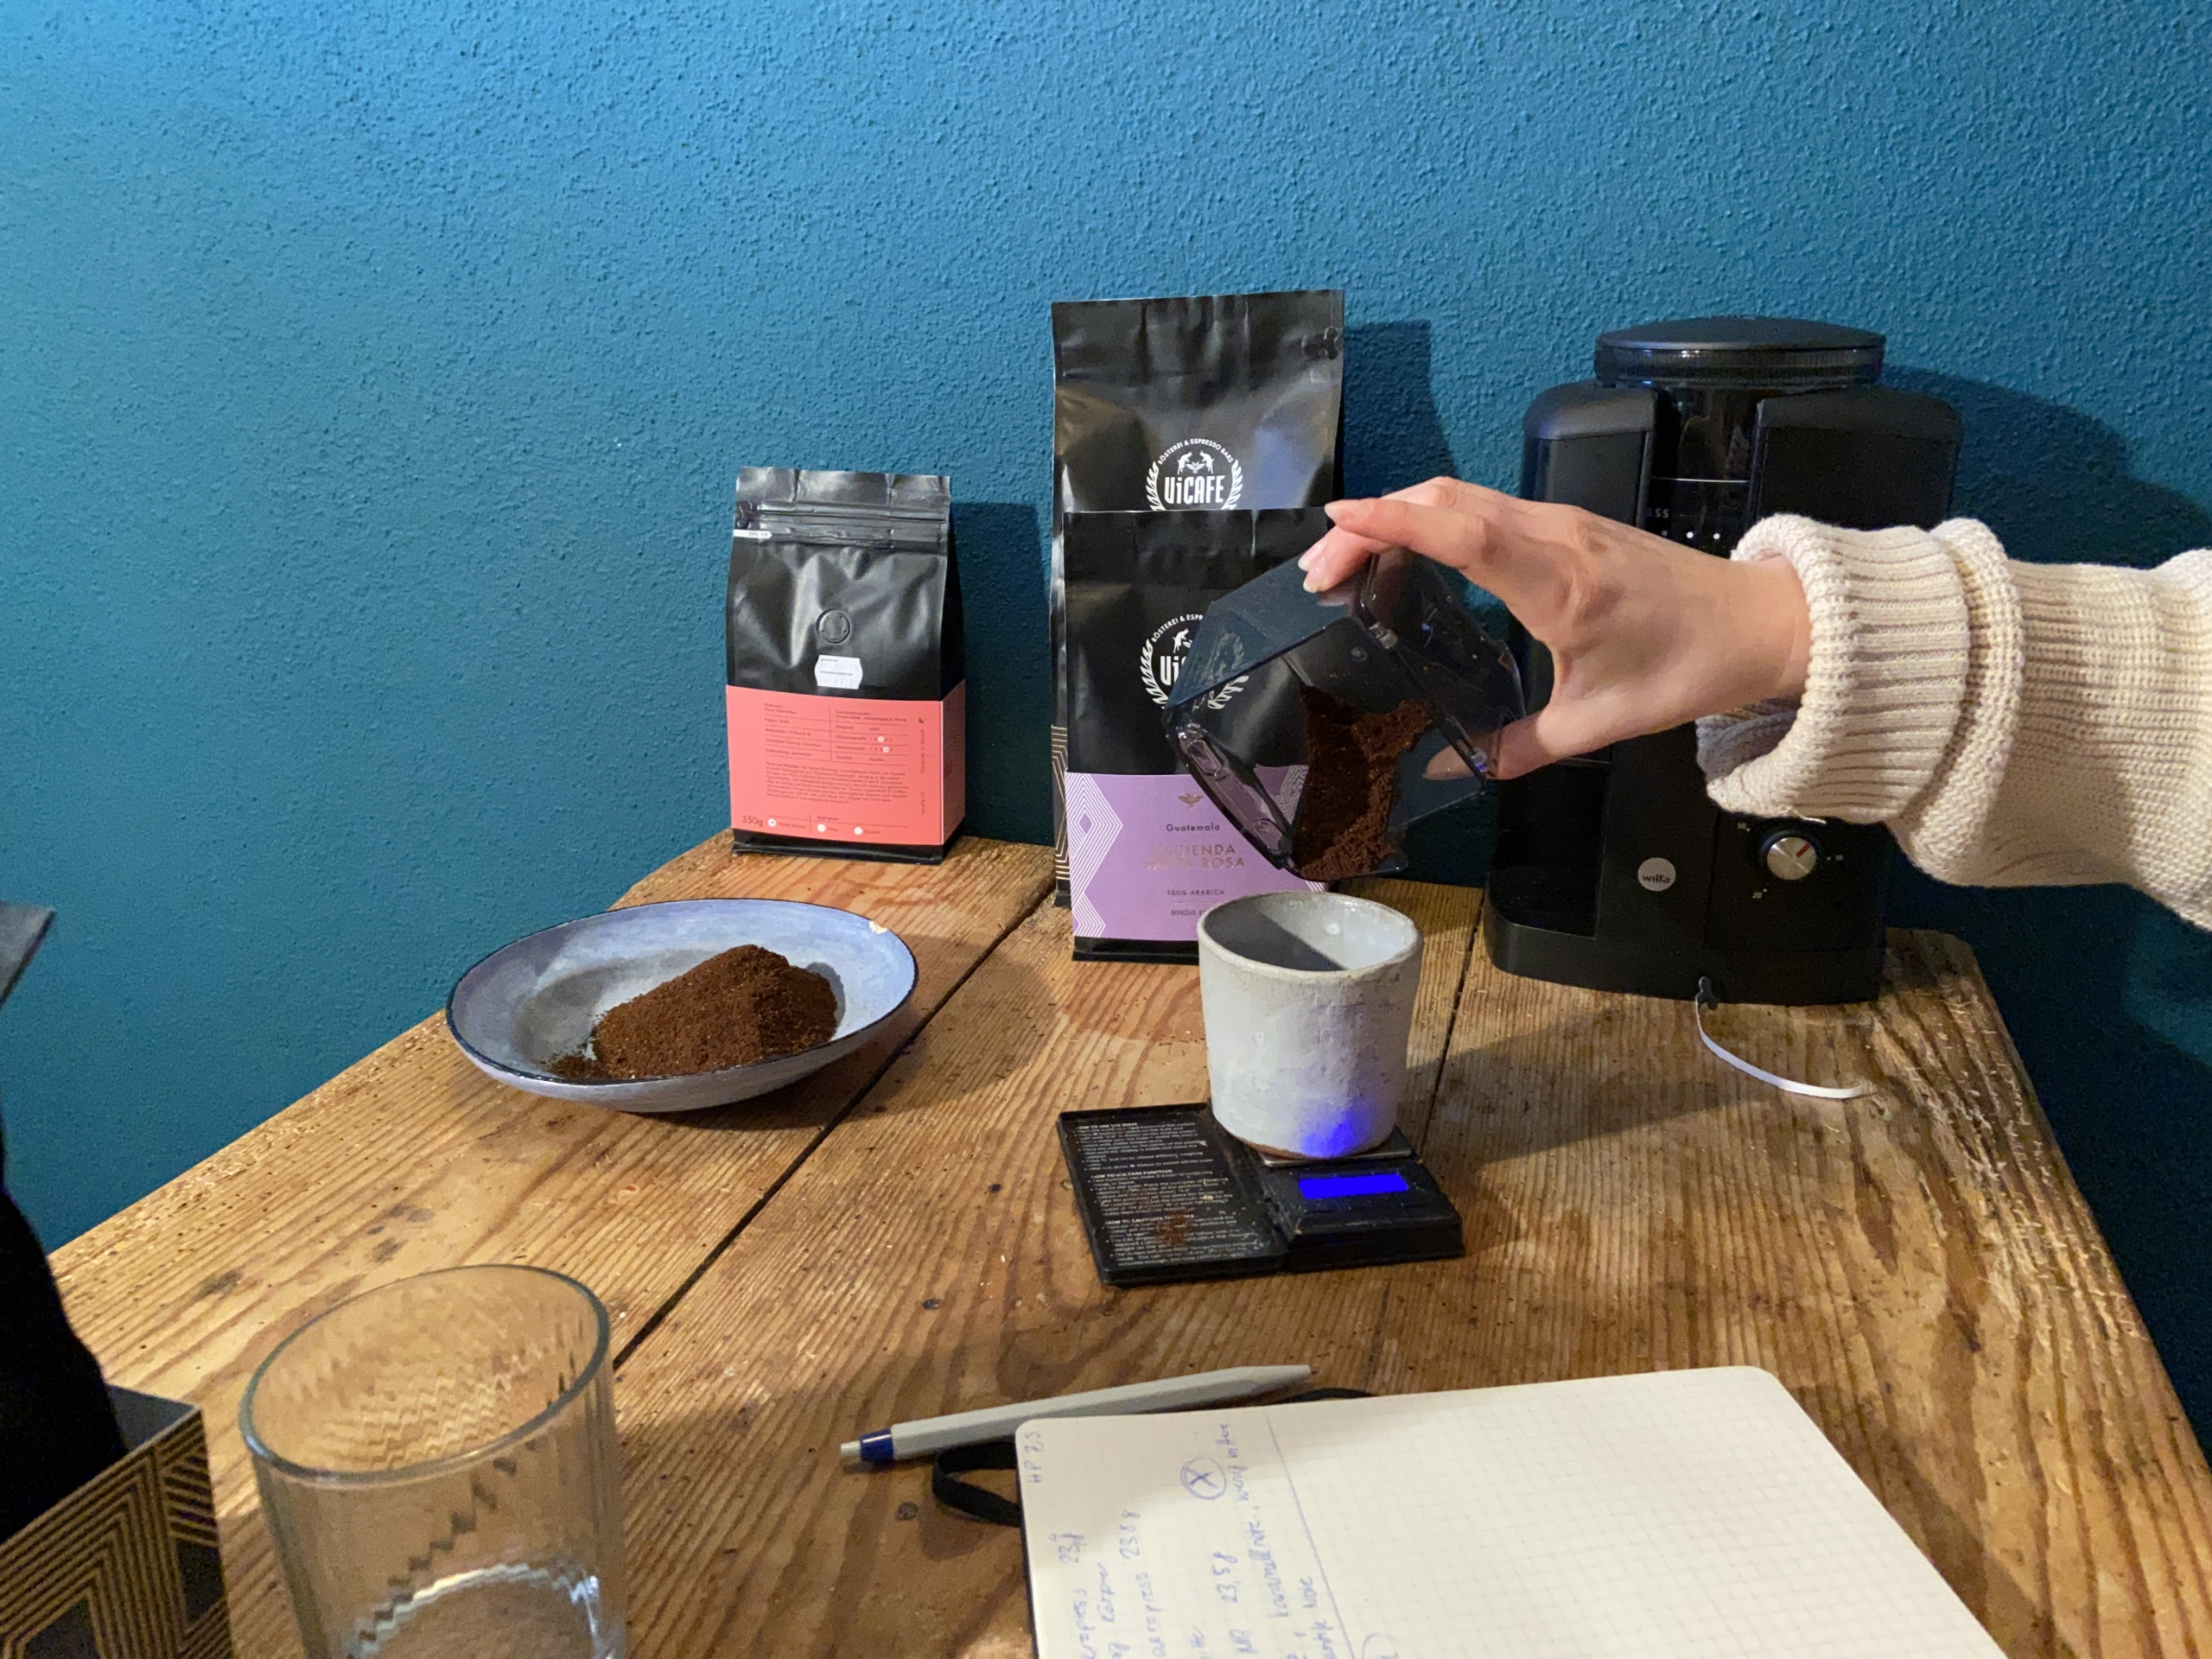 hand measuring coffee on scale